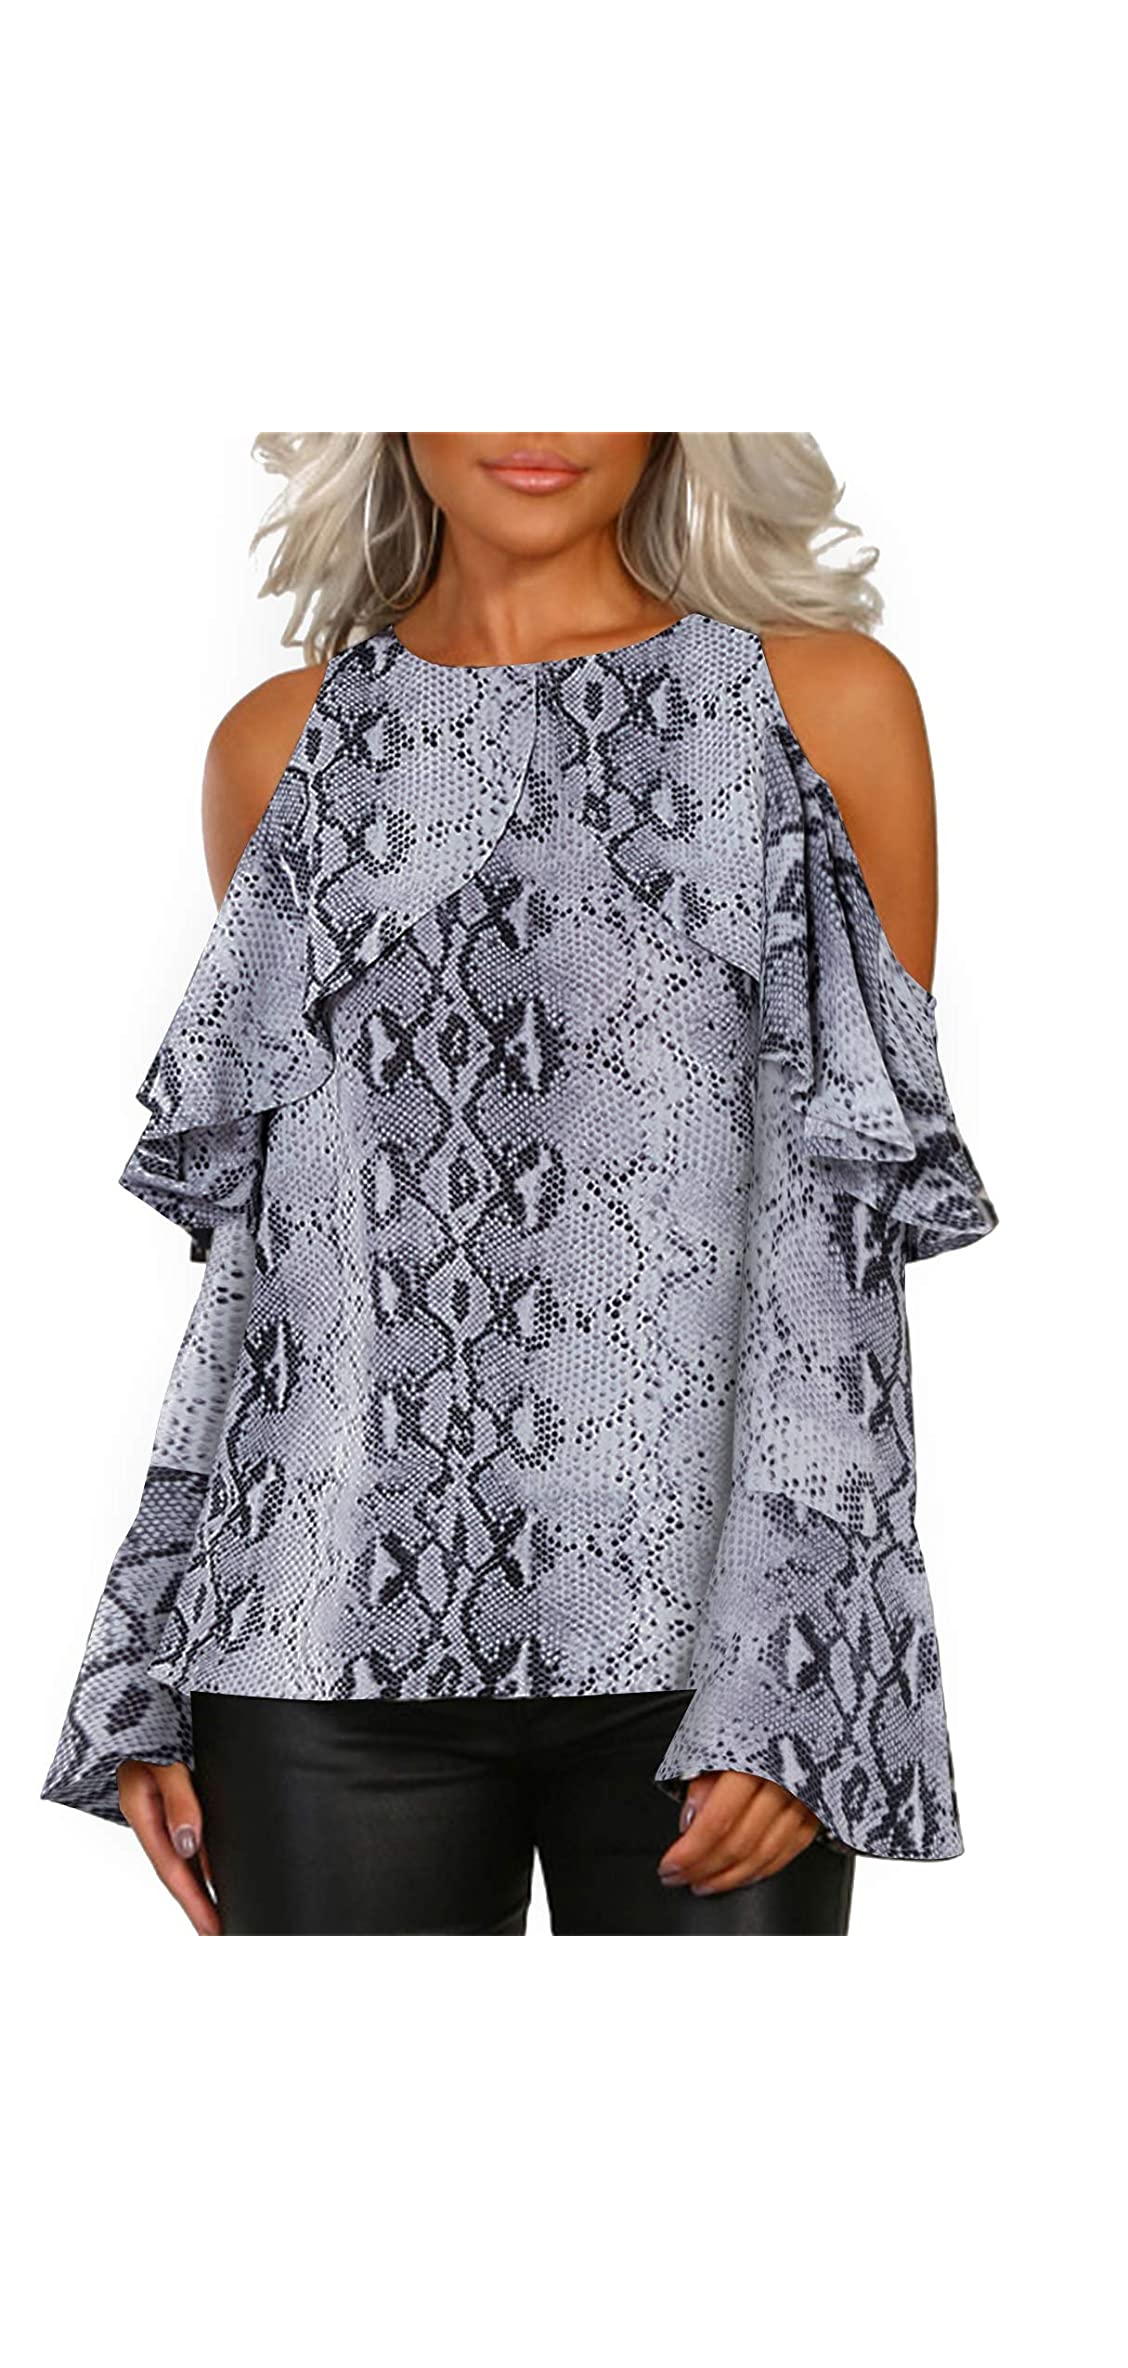 Long Sleeves Tops Blouse Shirts For Women Leopard Cold